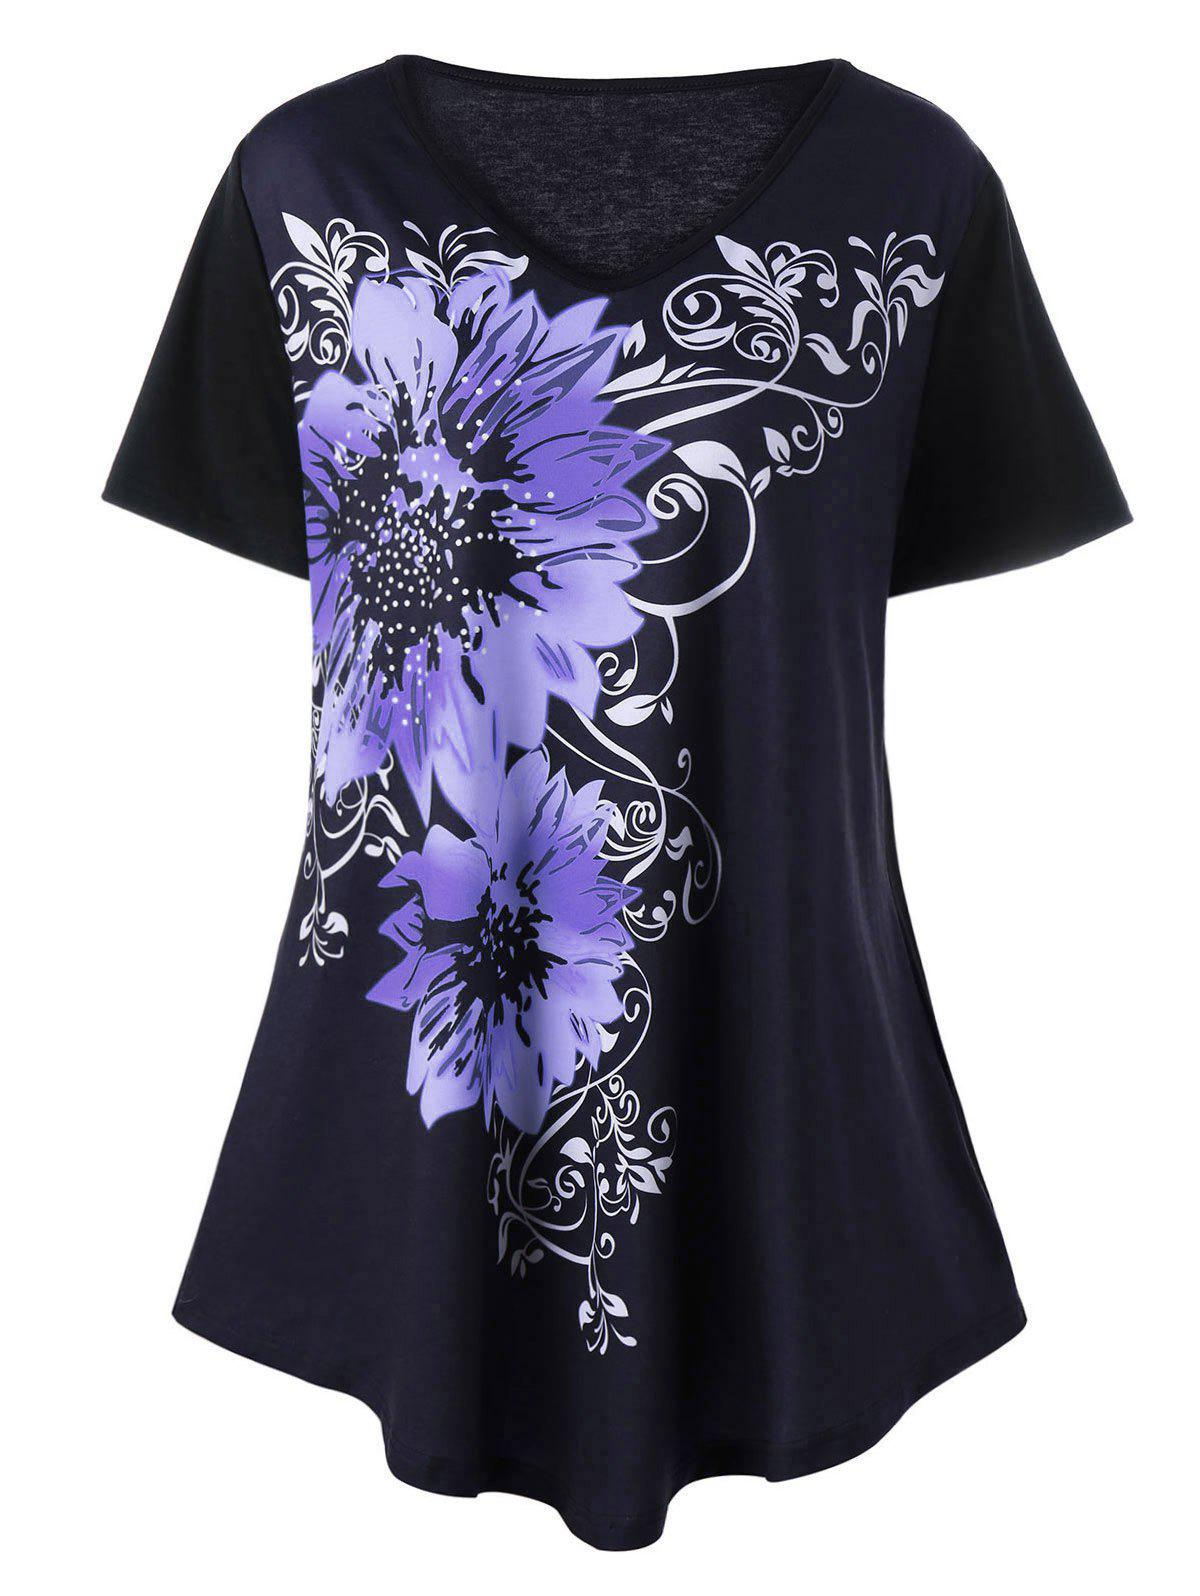 2018 plus size floral graphic v neck t shirt purple xl in for T shirt graphics for sale